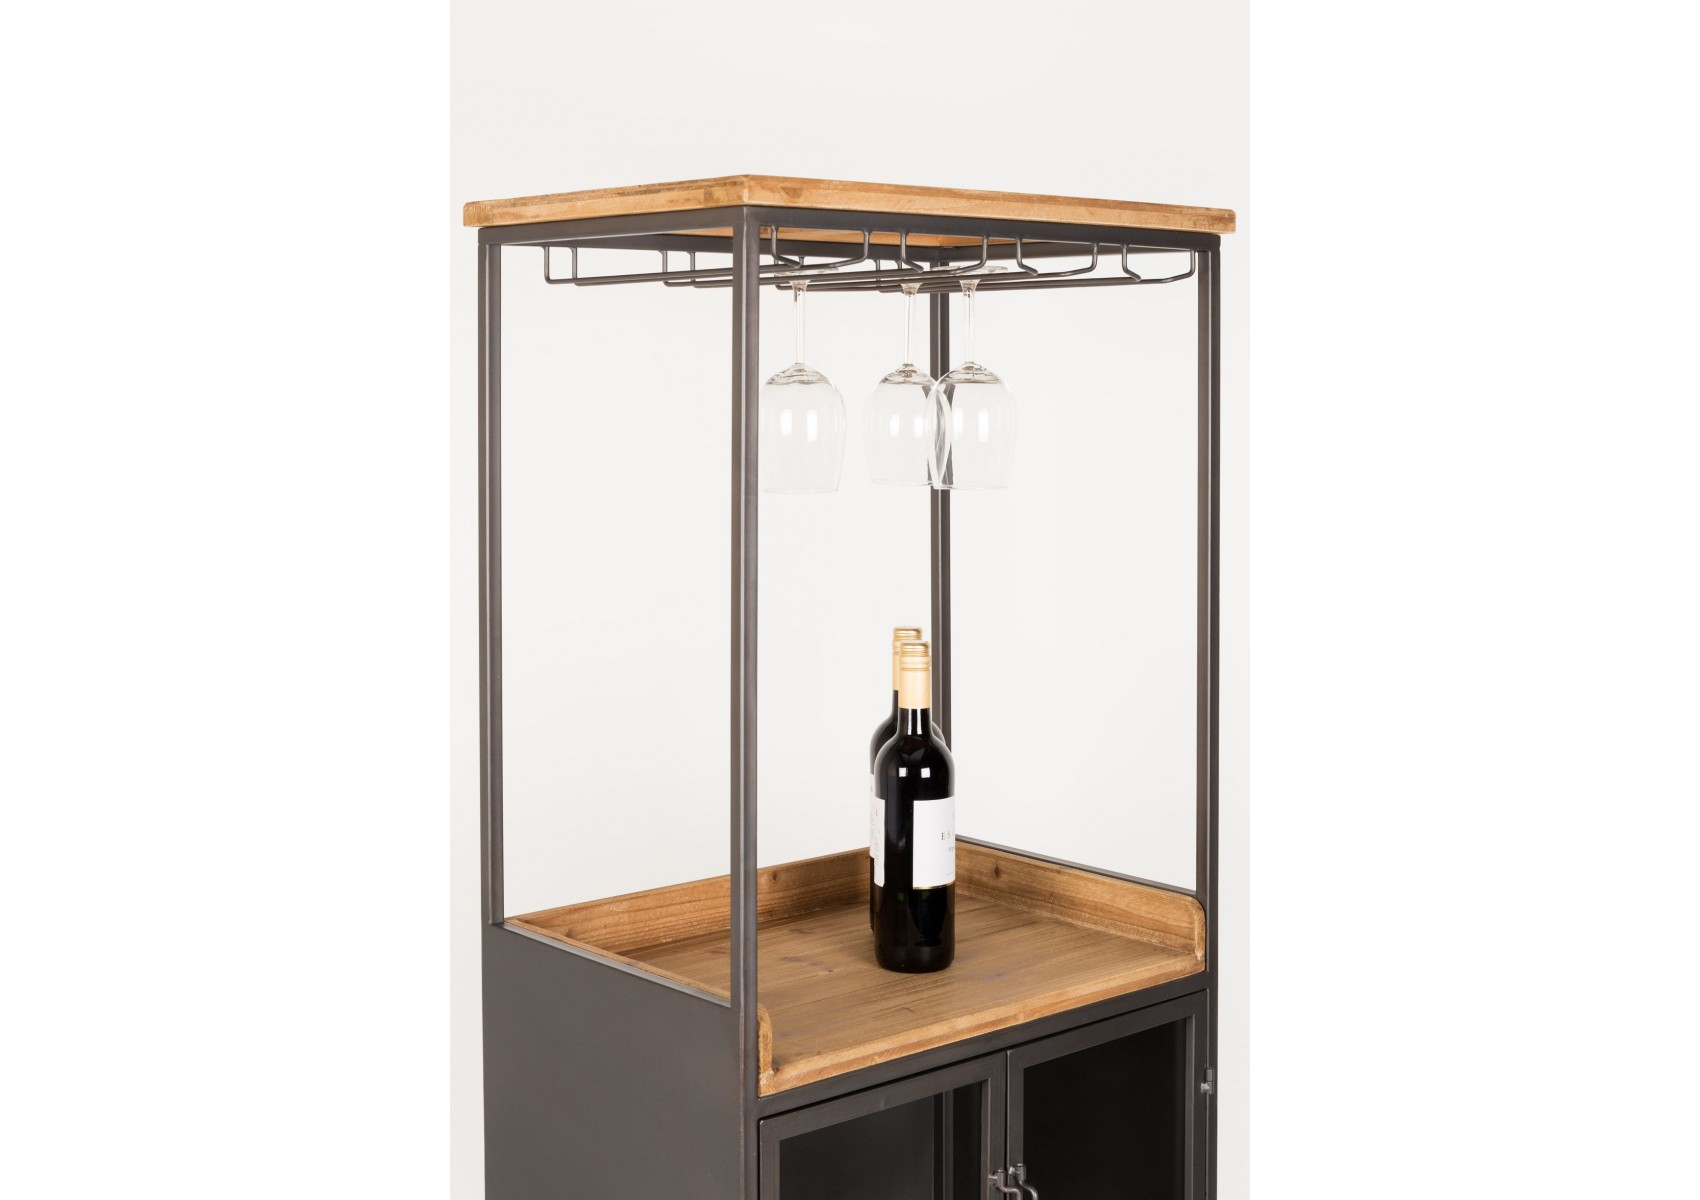 meuble bar vin en bois et m tal diaman boite design. Black Bedroom Furniture Sets. Home Design Ideas